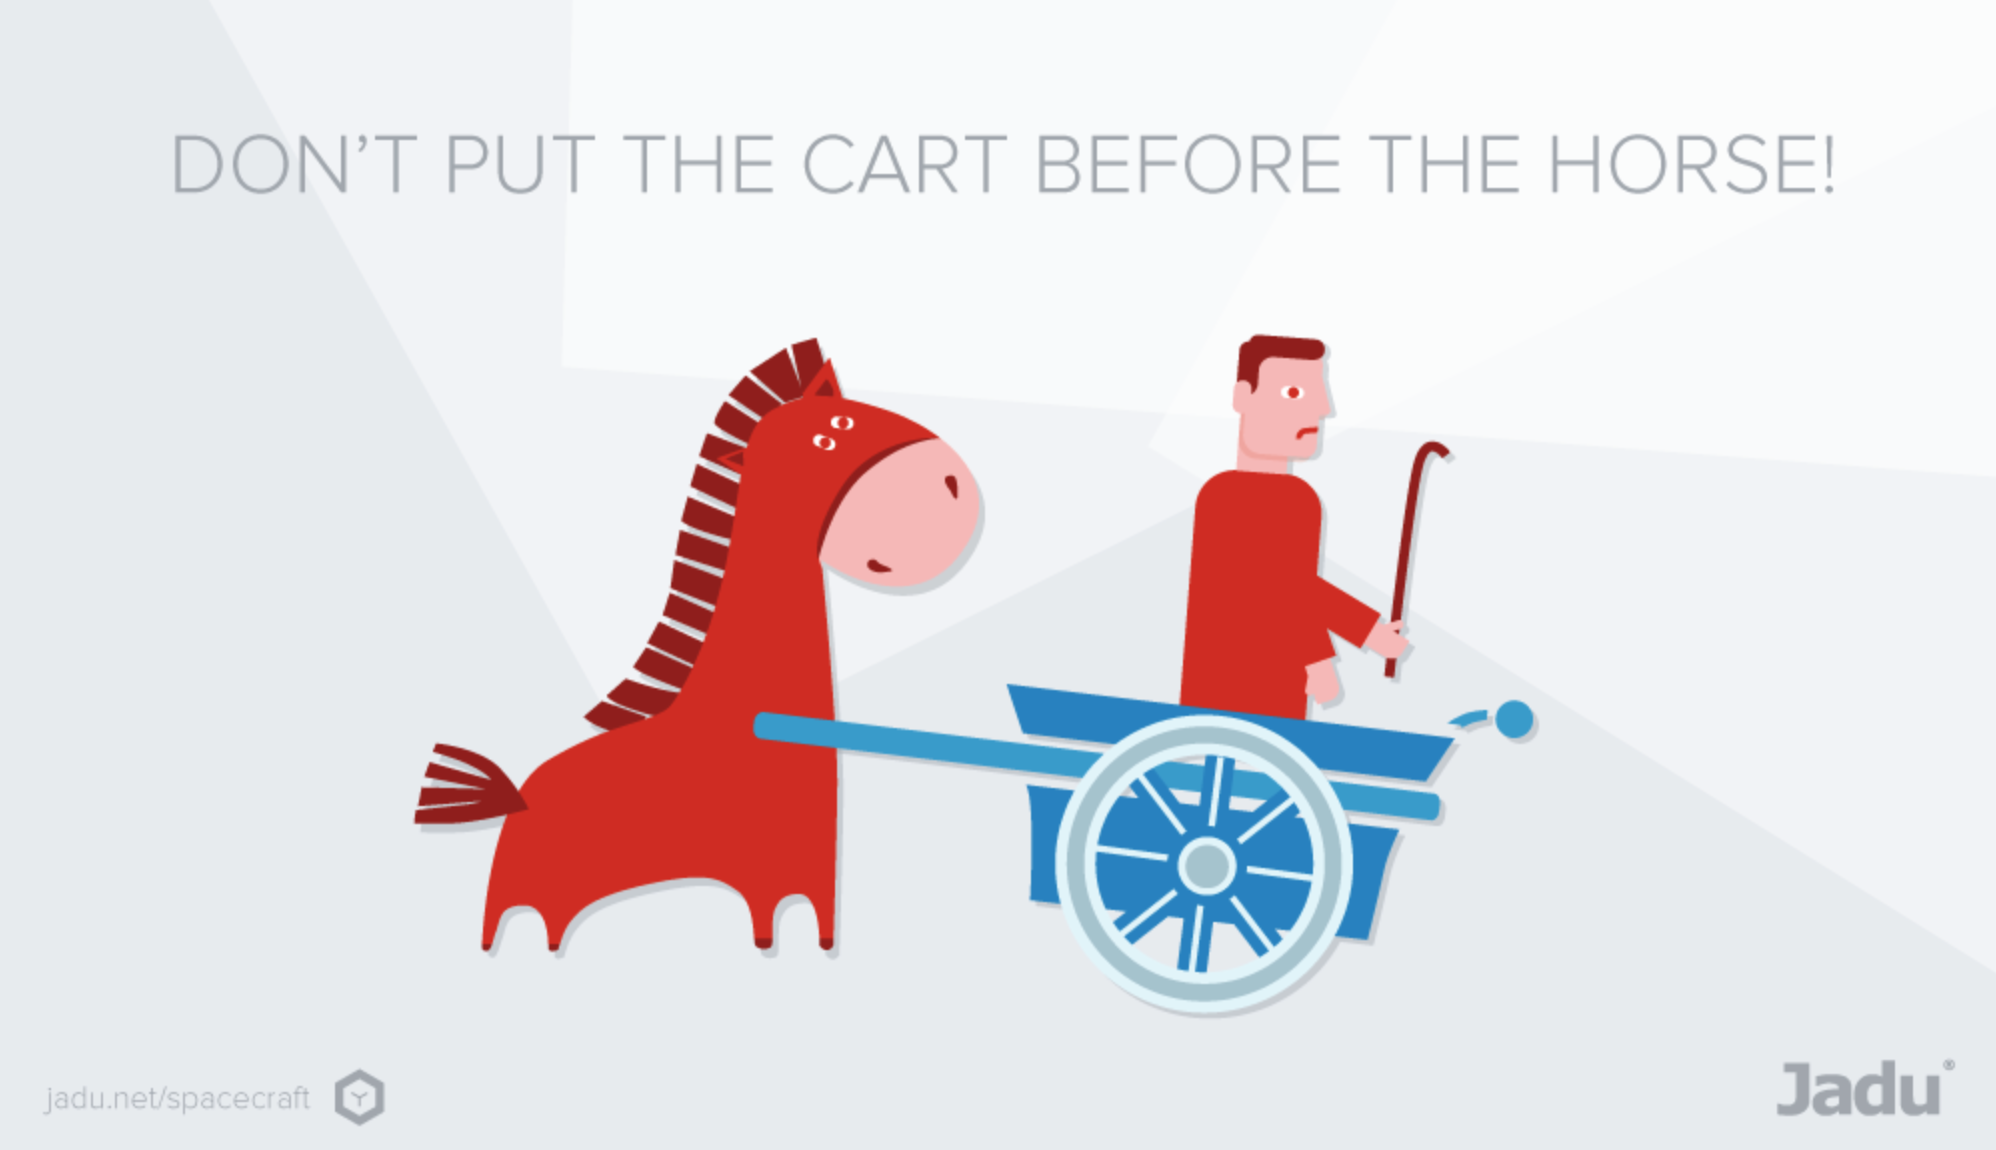 CRM Integration Best Practice: Don't put the cart before the horse.